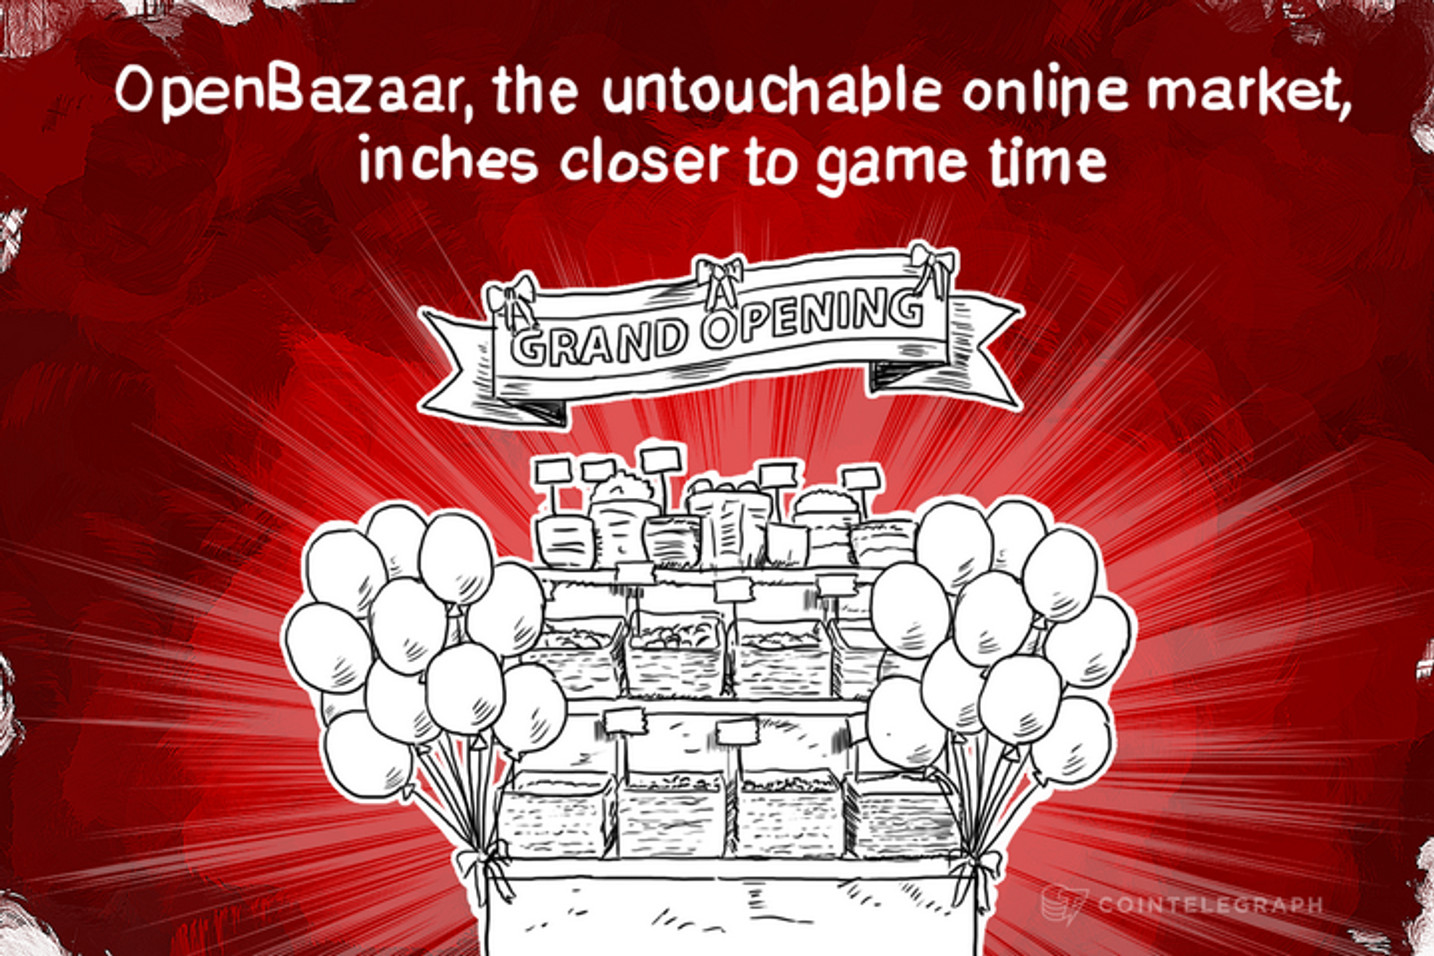 OpenBazaar, the untouchable online market, inches closer to game time